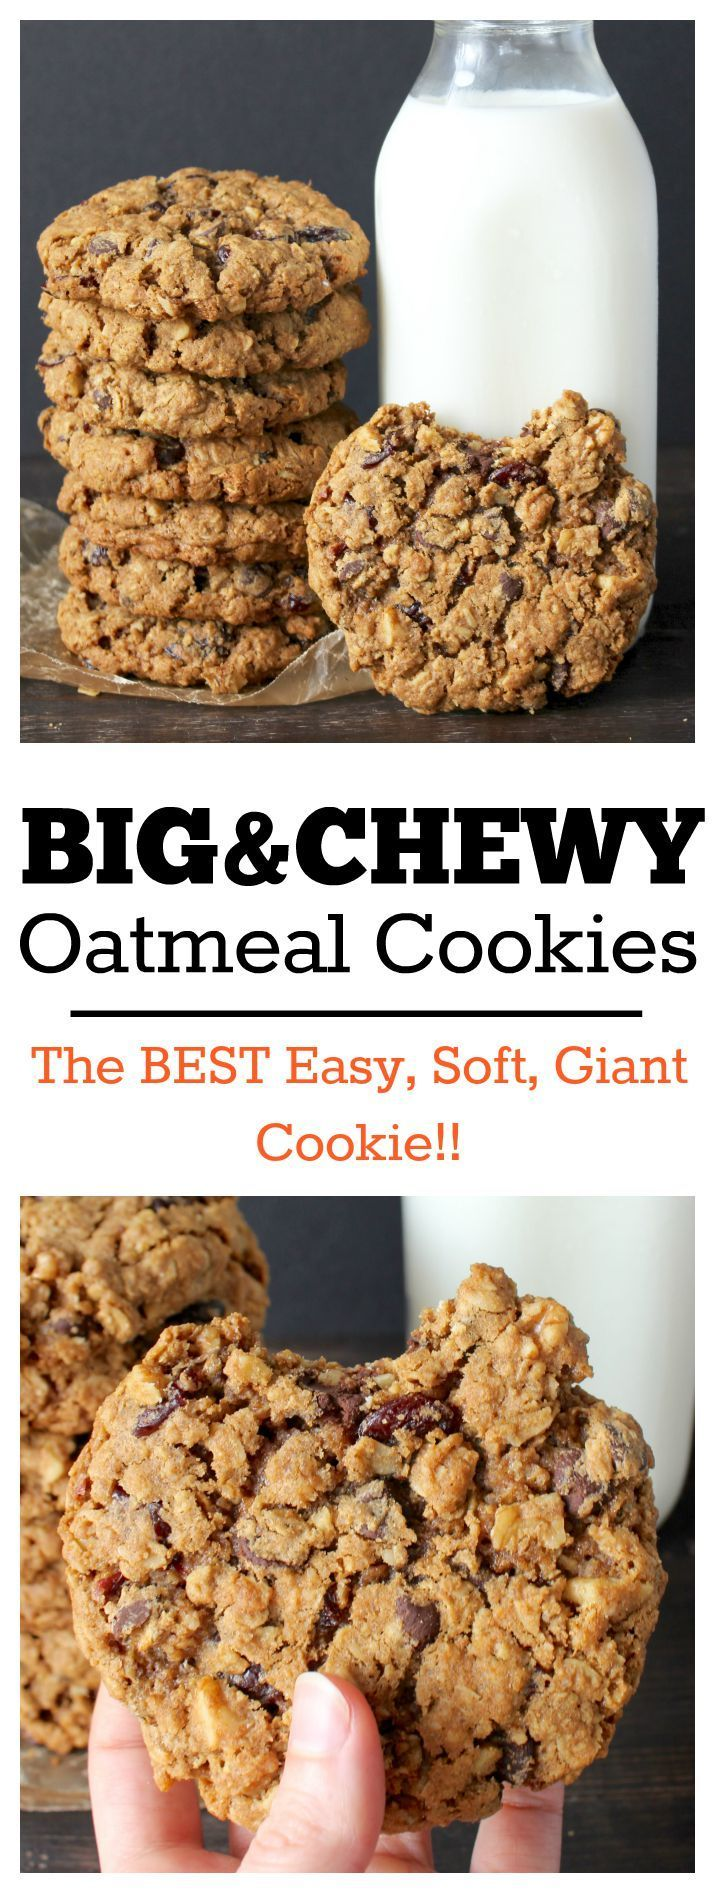 Big and Chewy Oatmeal Cookies - These cookies are easy, super thick, giant, and delicious!!